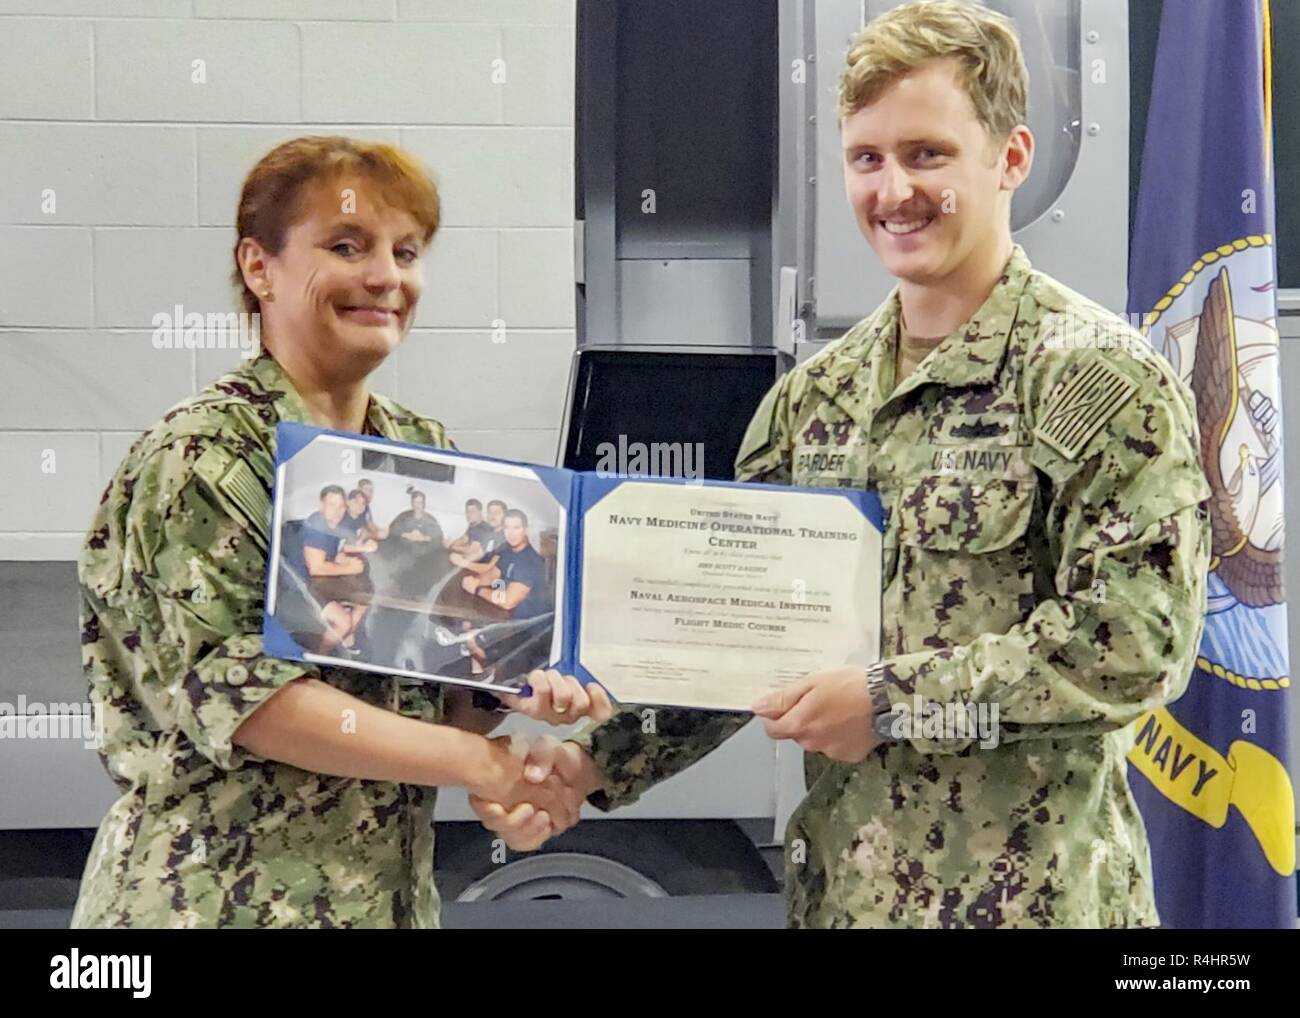 PENSACOLA, Fla. (Sept. 25, 2018) - Cmdr. Malissa Wickersham, left, announces Hospital Corpsman 2nd Class Scott Barder as the honor graduate of the Flight Medic Course (FMC) at Naval Aerospace Medical Institute (NAMI). FMC teaches students the foundations of international trauma life support, pediatric education for prehospital professionals, and advanced cardiovascular life support classes. - Stock Image